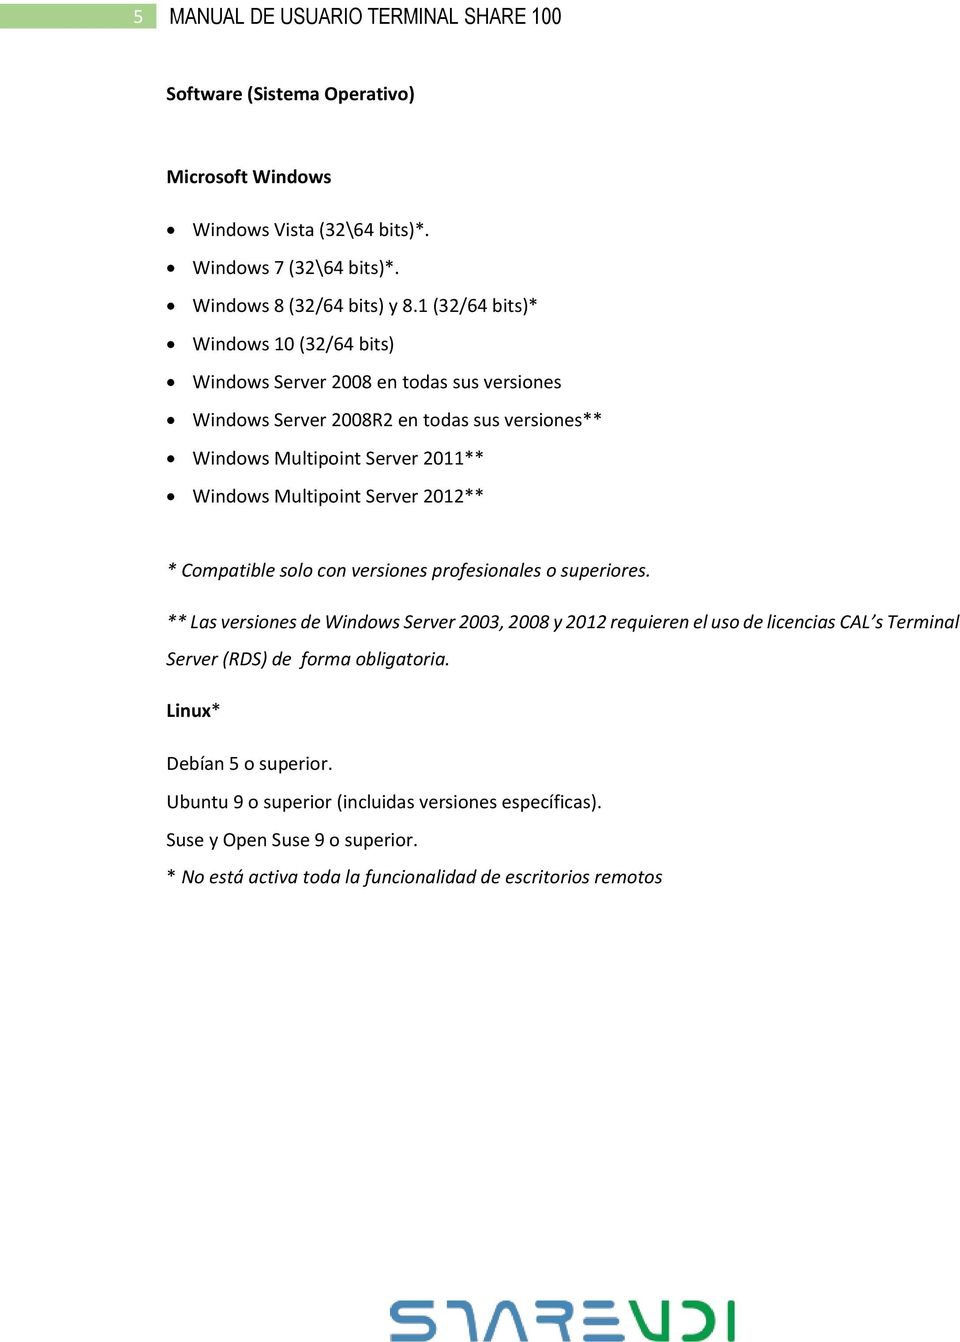 Server 2012** * Compatible solo con versiones profesionales o superiores.